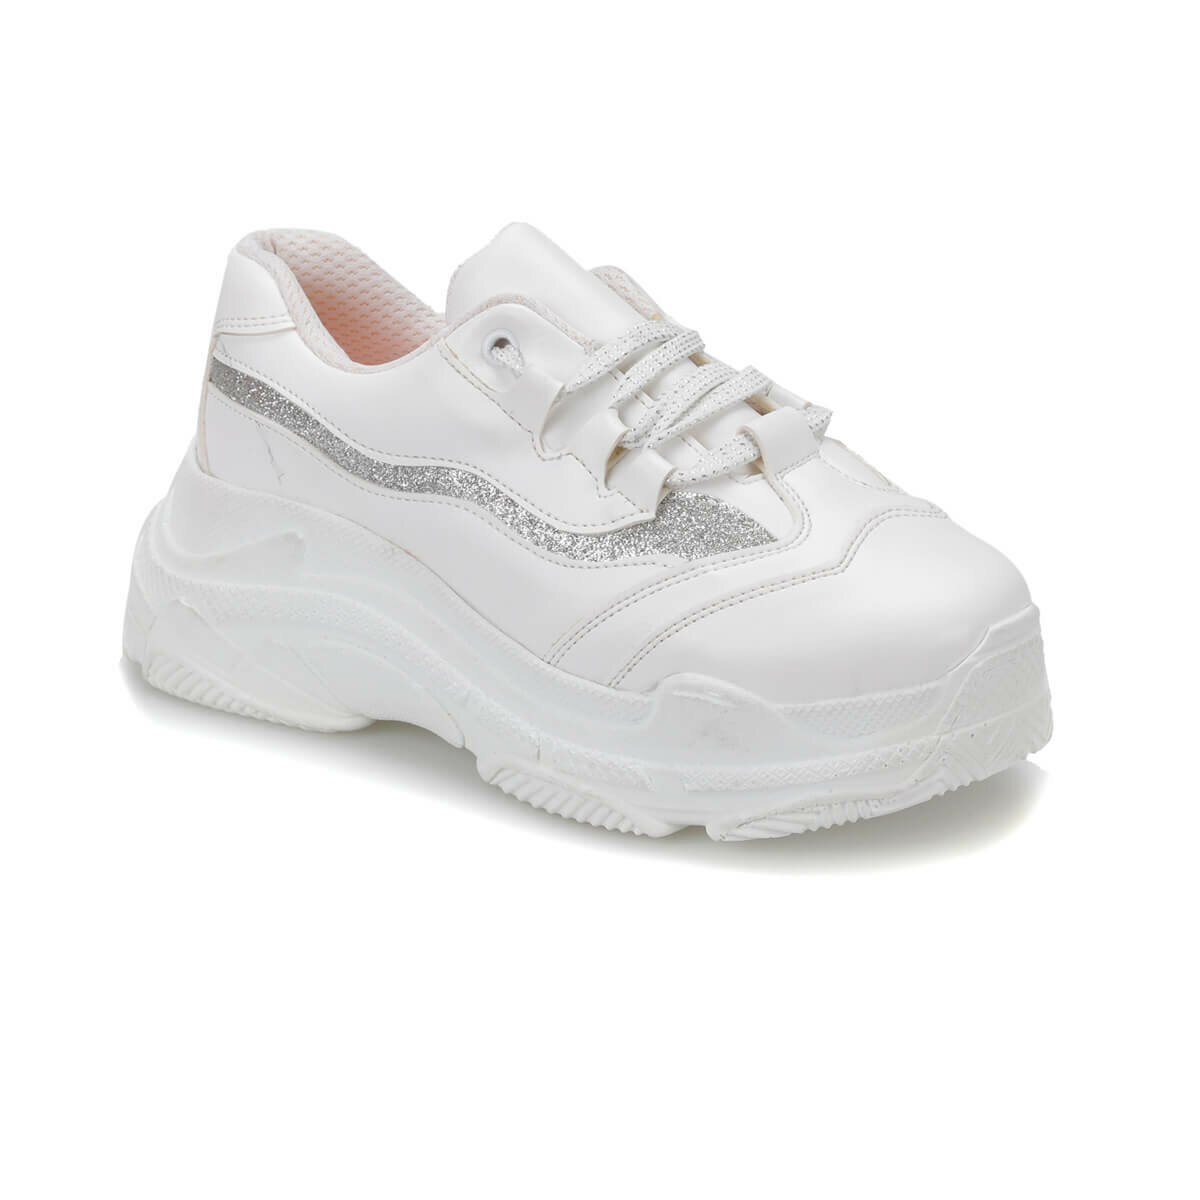 FLO CHUNKY White Female Child Sneaker Shoes I-Cool